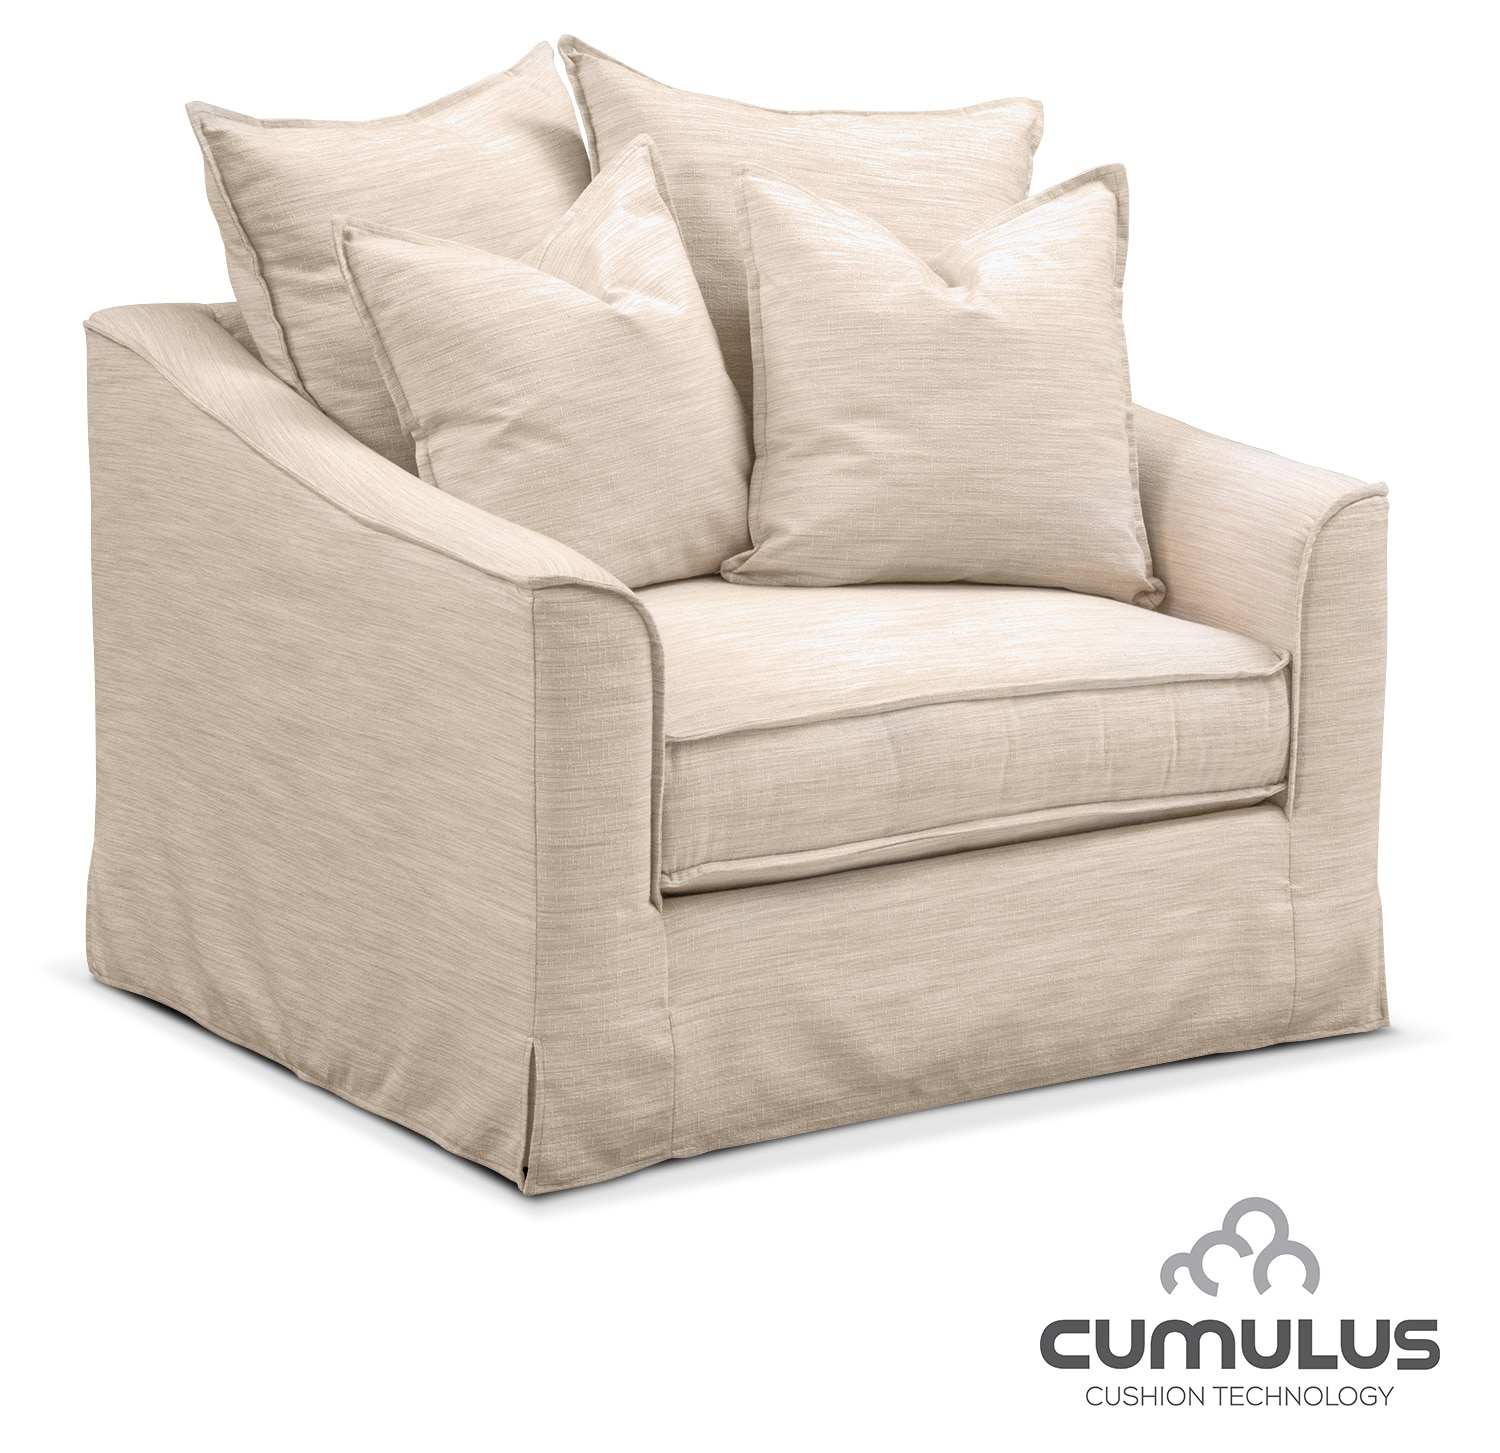 Living Room Furniture - Brooke Cumulus Chair and a Half - Ivory